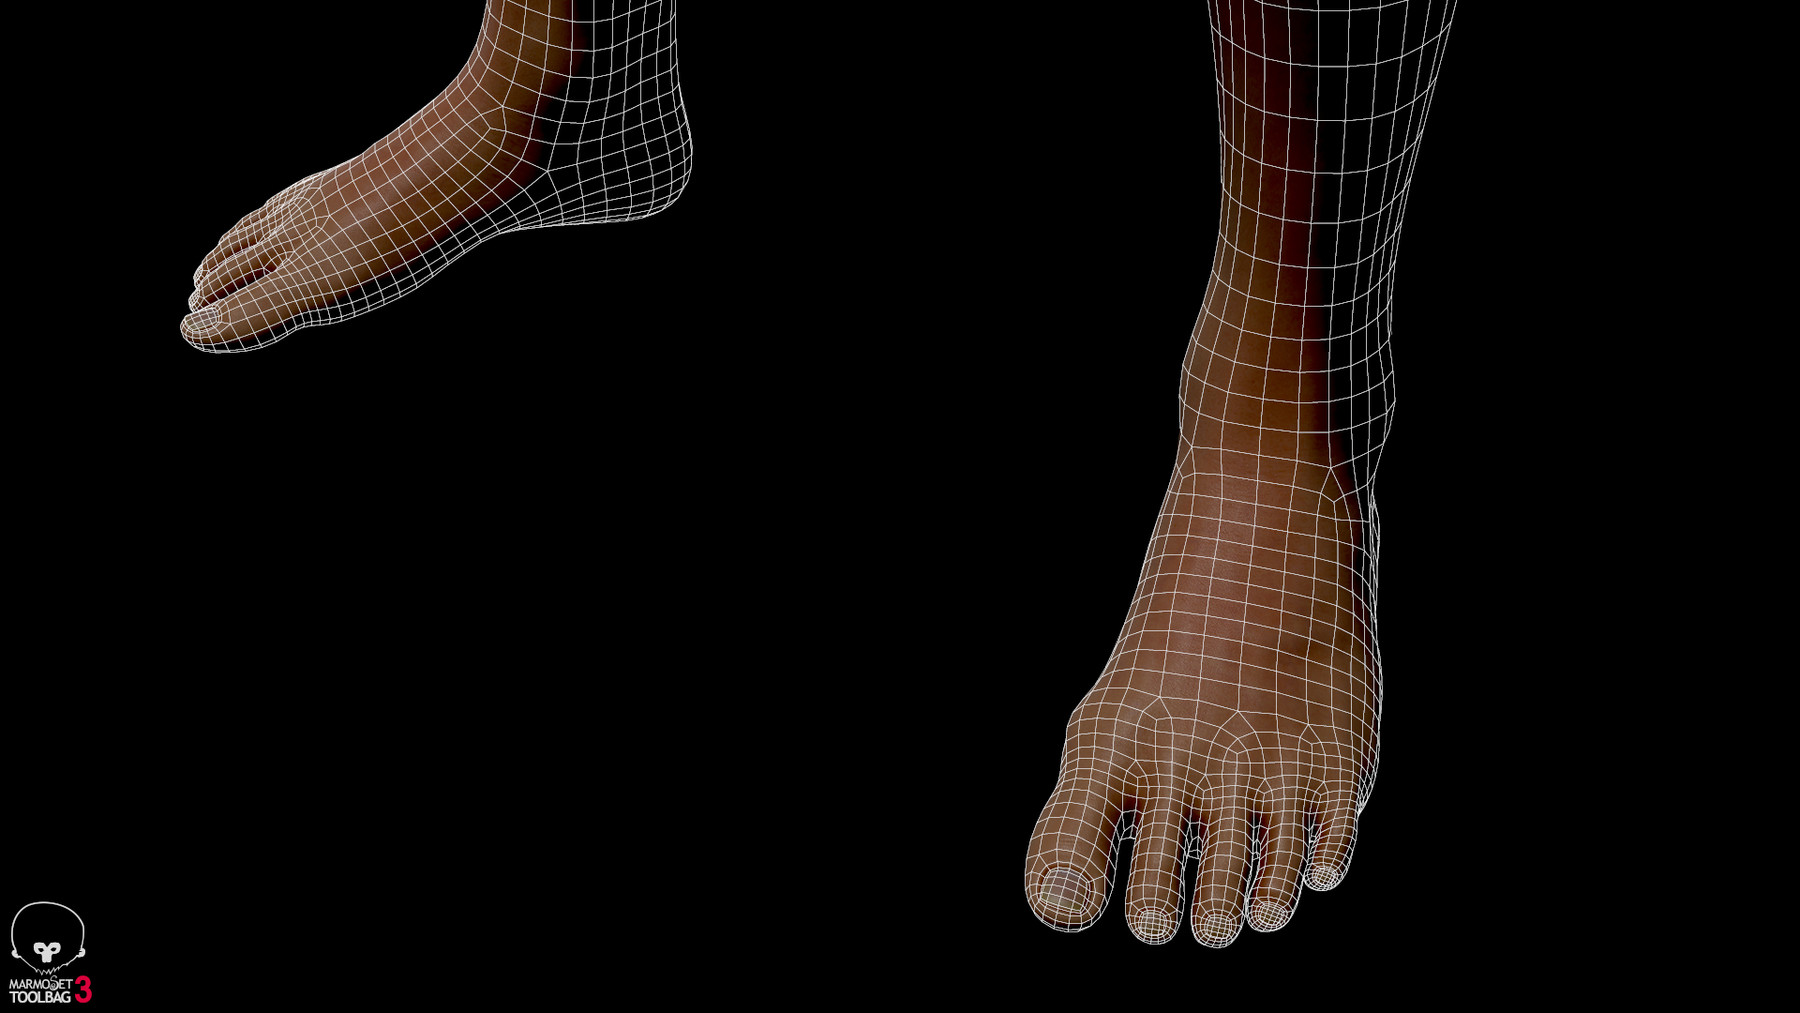 Averagemalebody by alexlashko wireframe 06